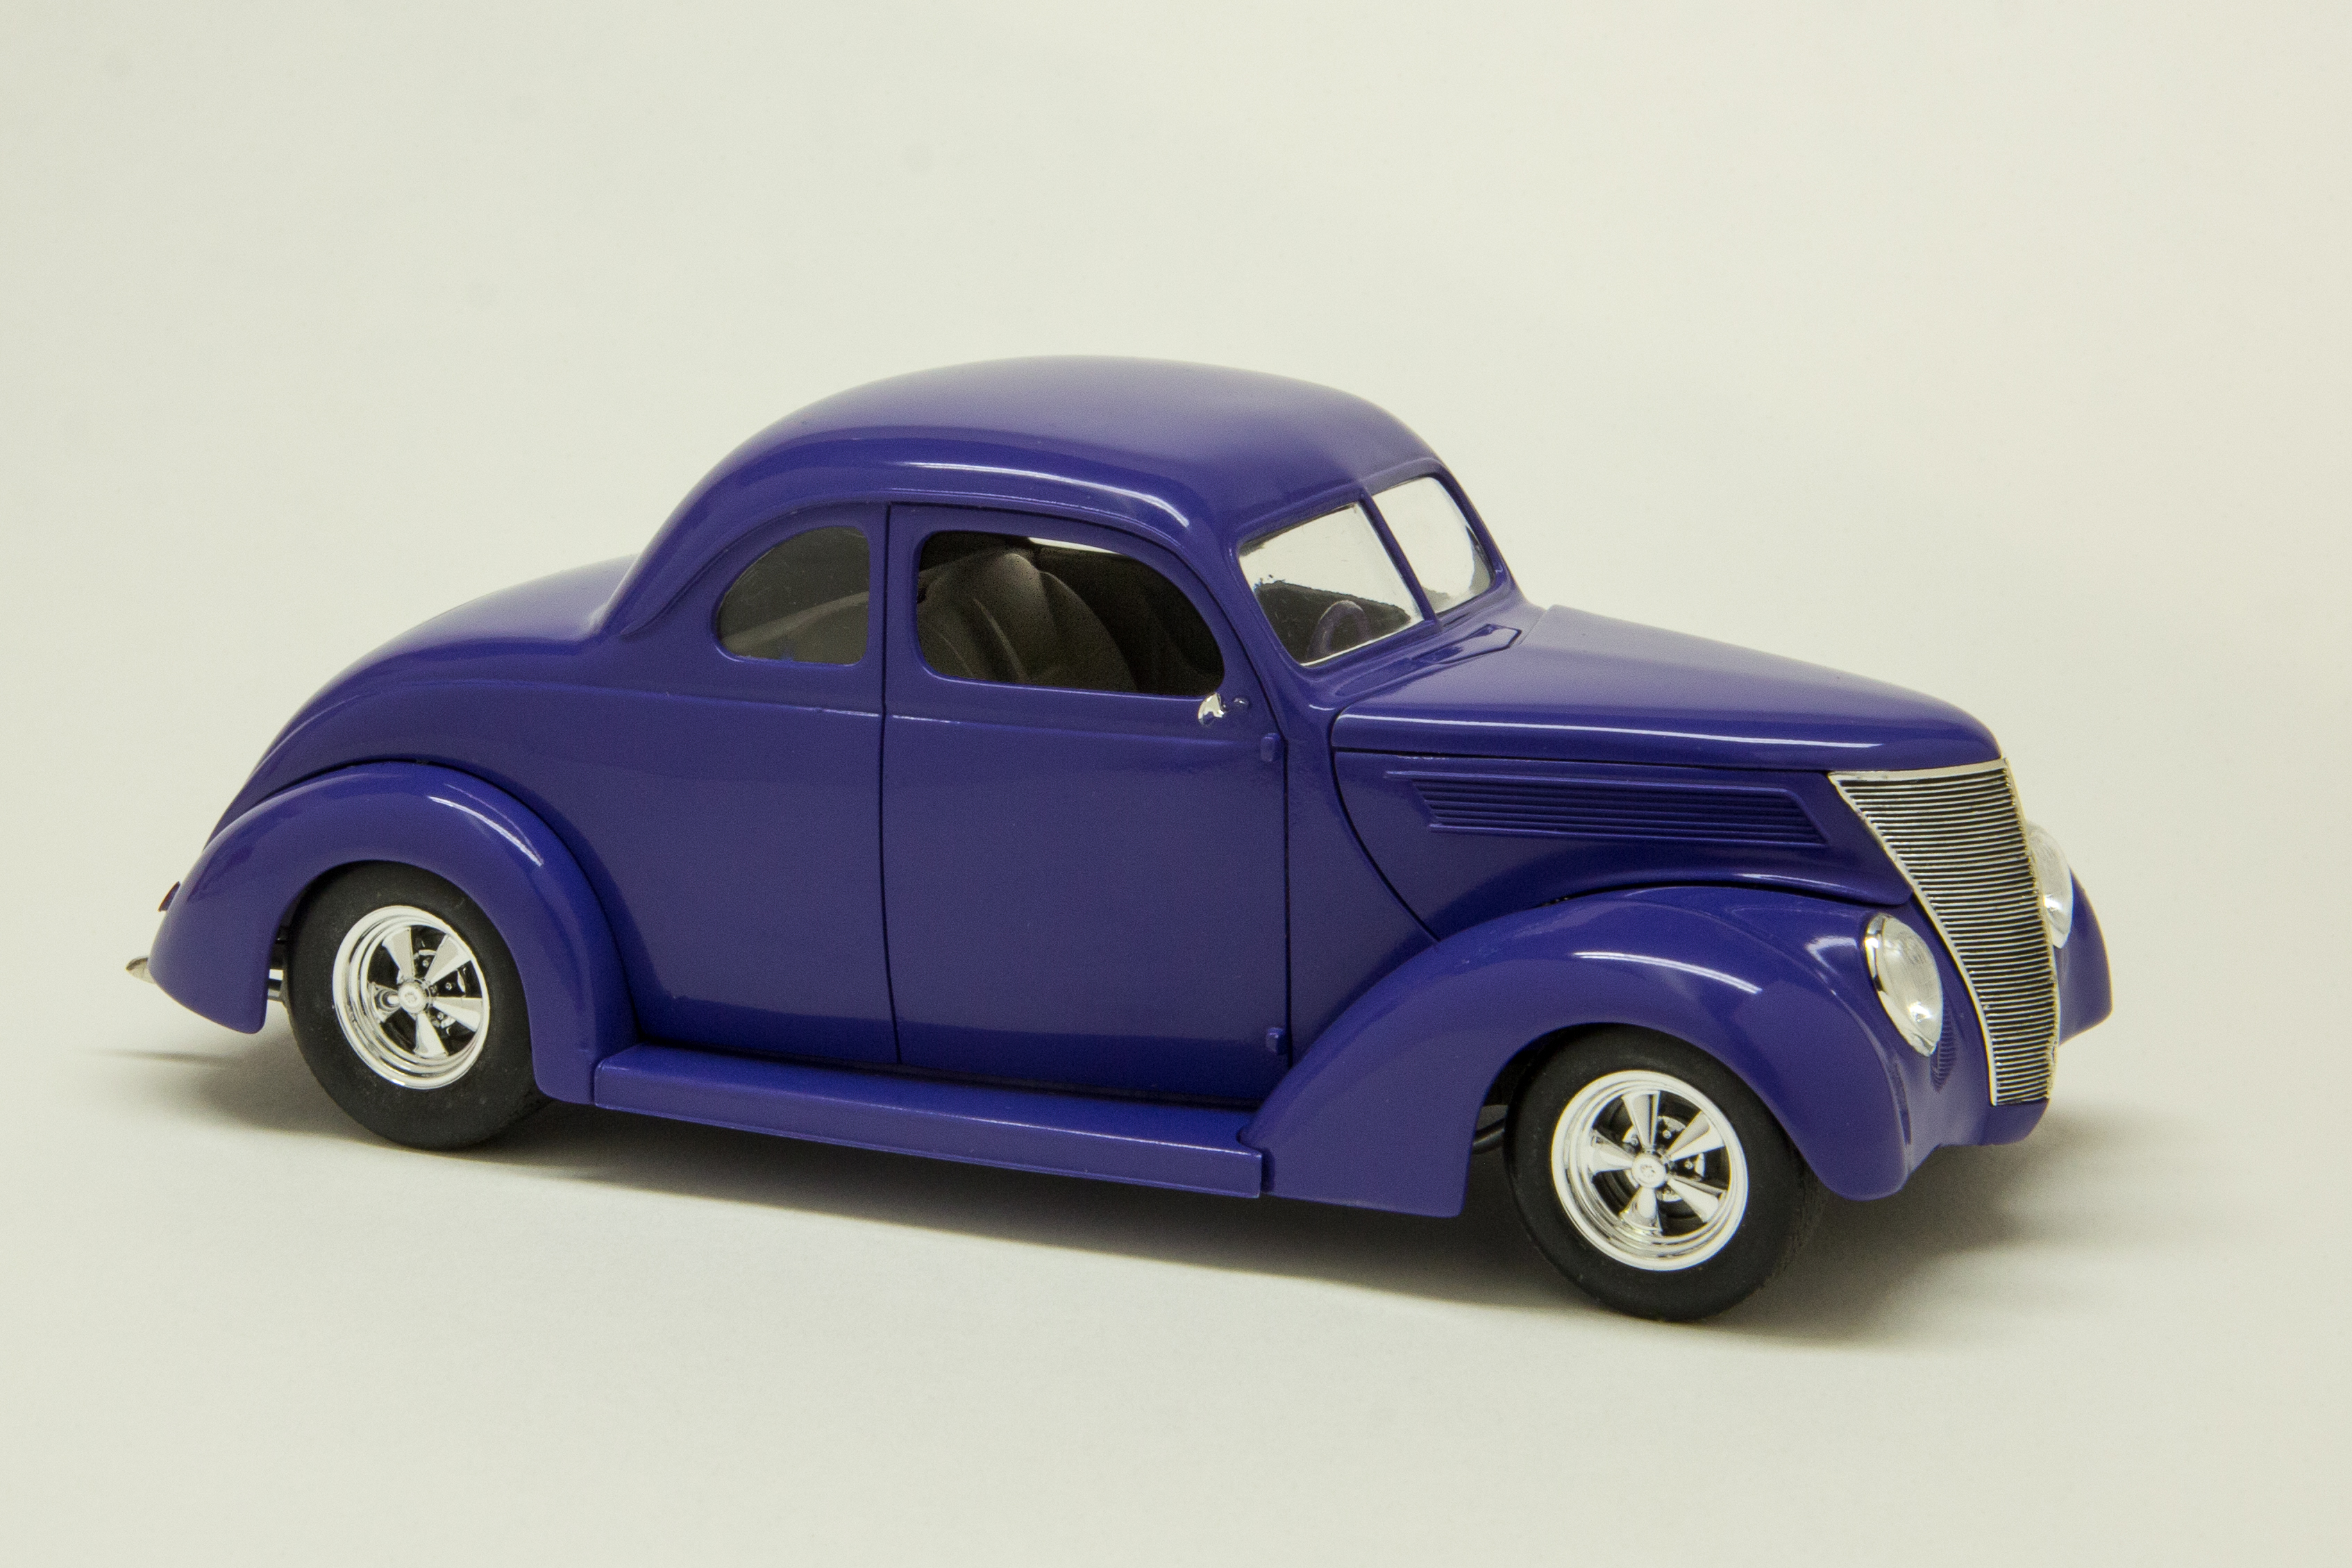 37 Ford #9022